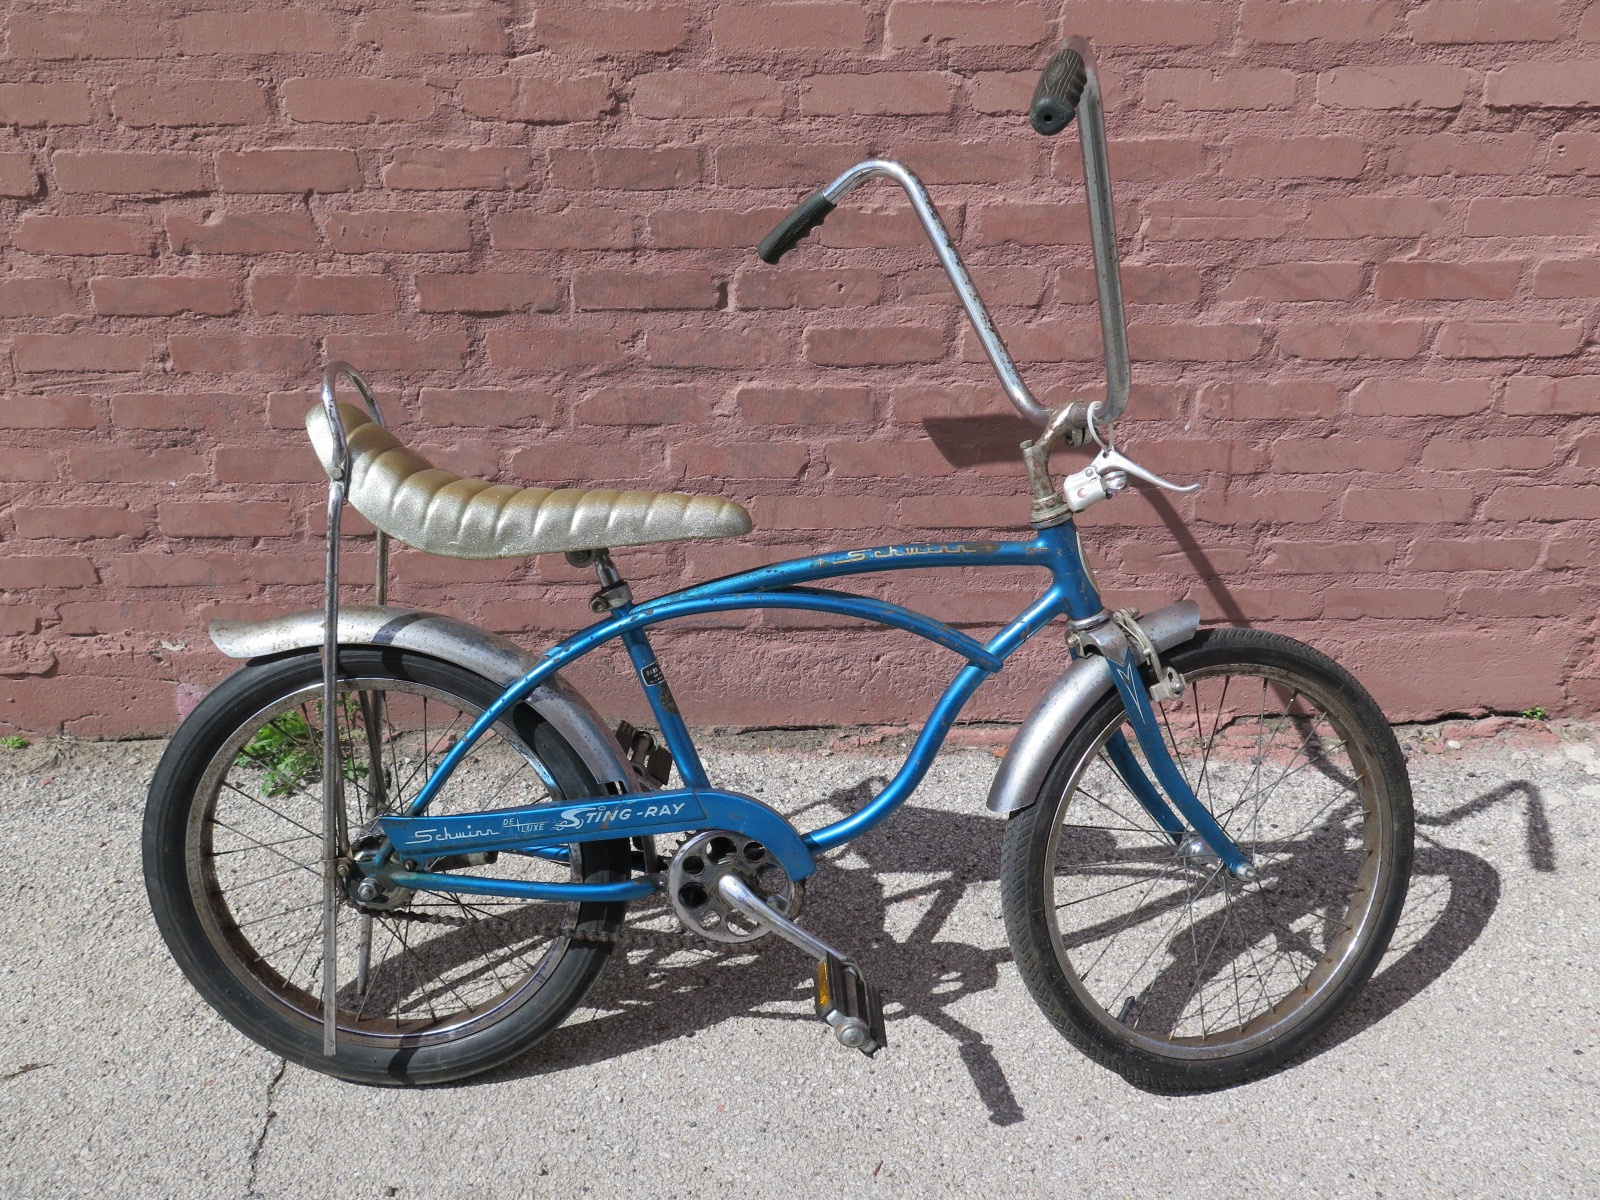 Schwinn Stingray 2 speed kickback